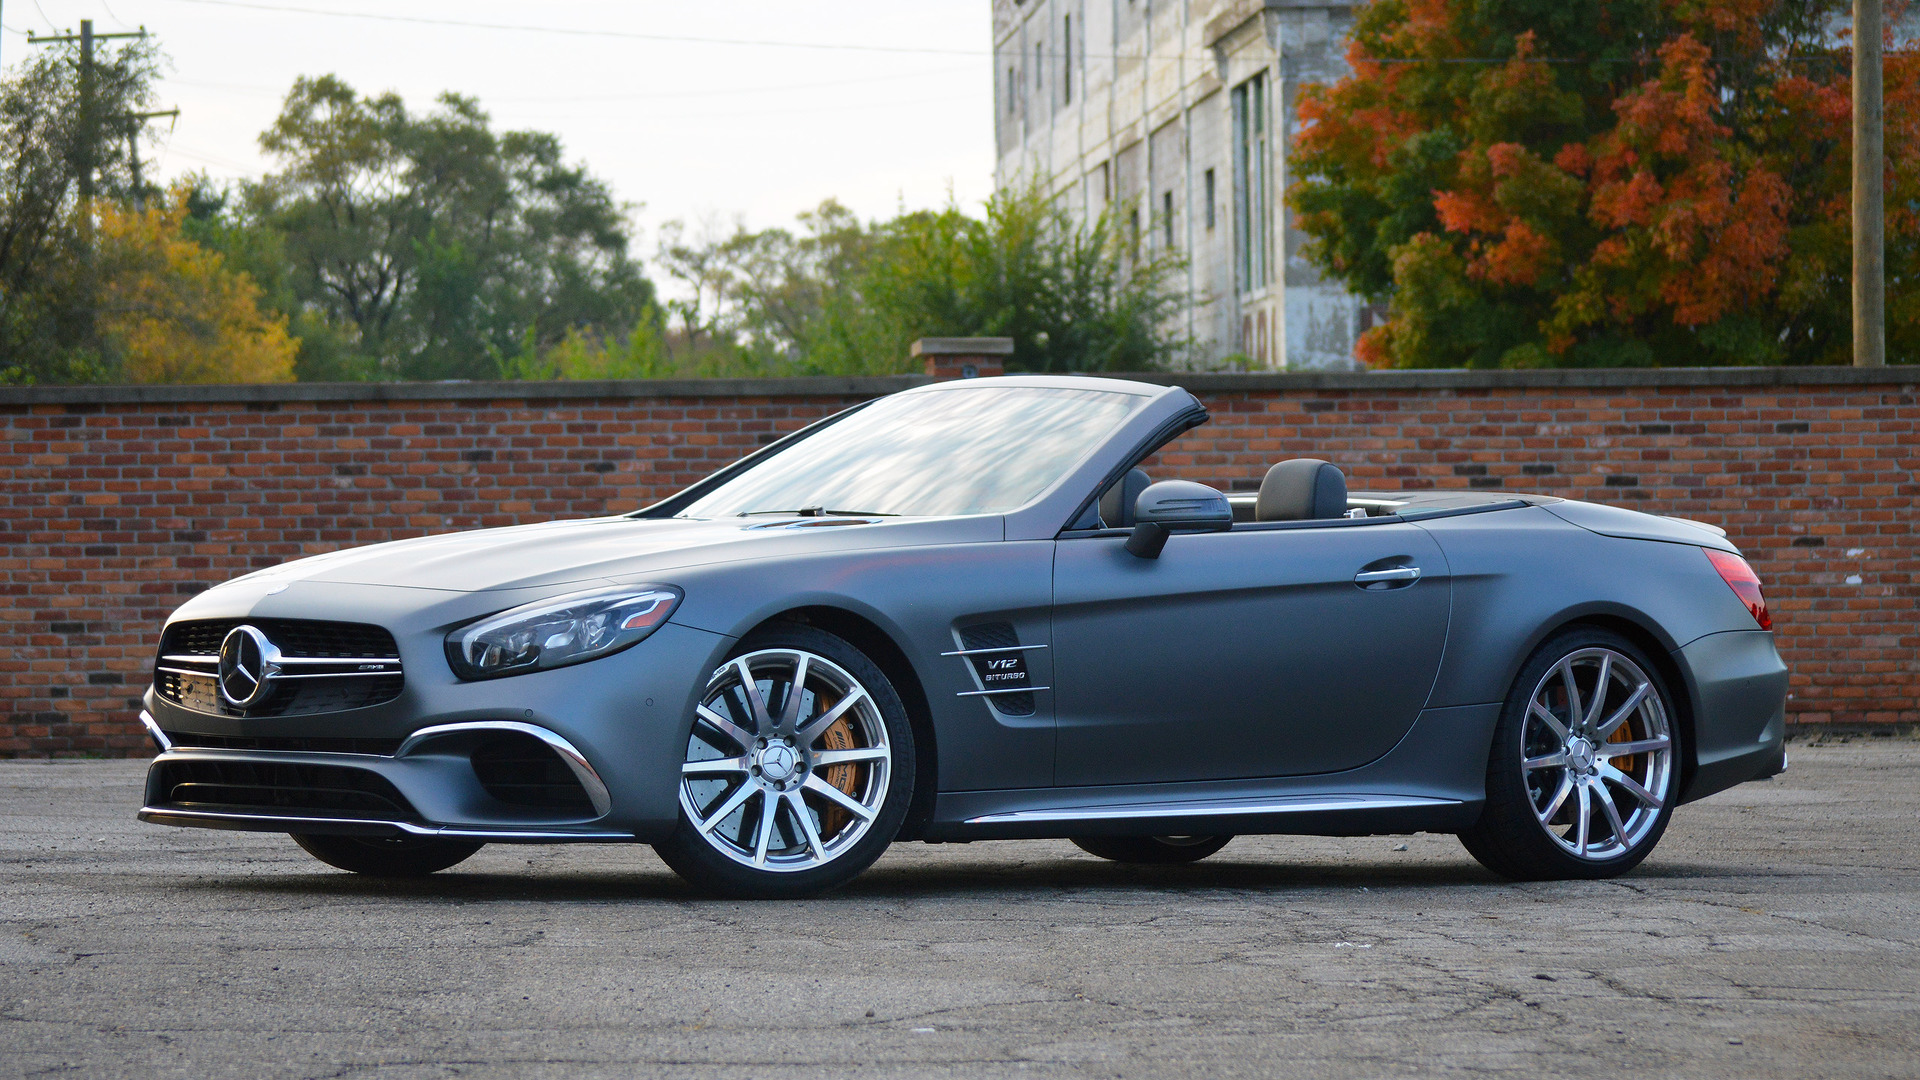 https://icdn-4.motor1.com/images/mgl/e1mPW/s1/2017-mercedes-amg-sl65-review.jpg